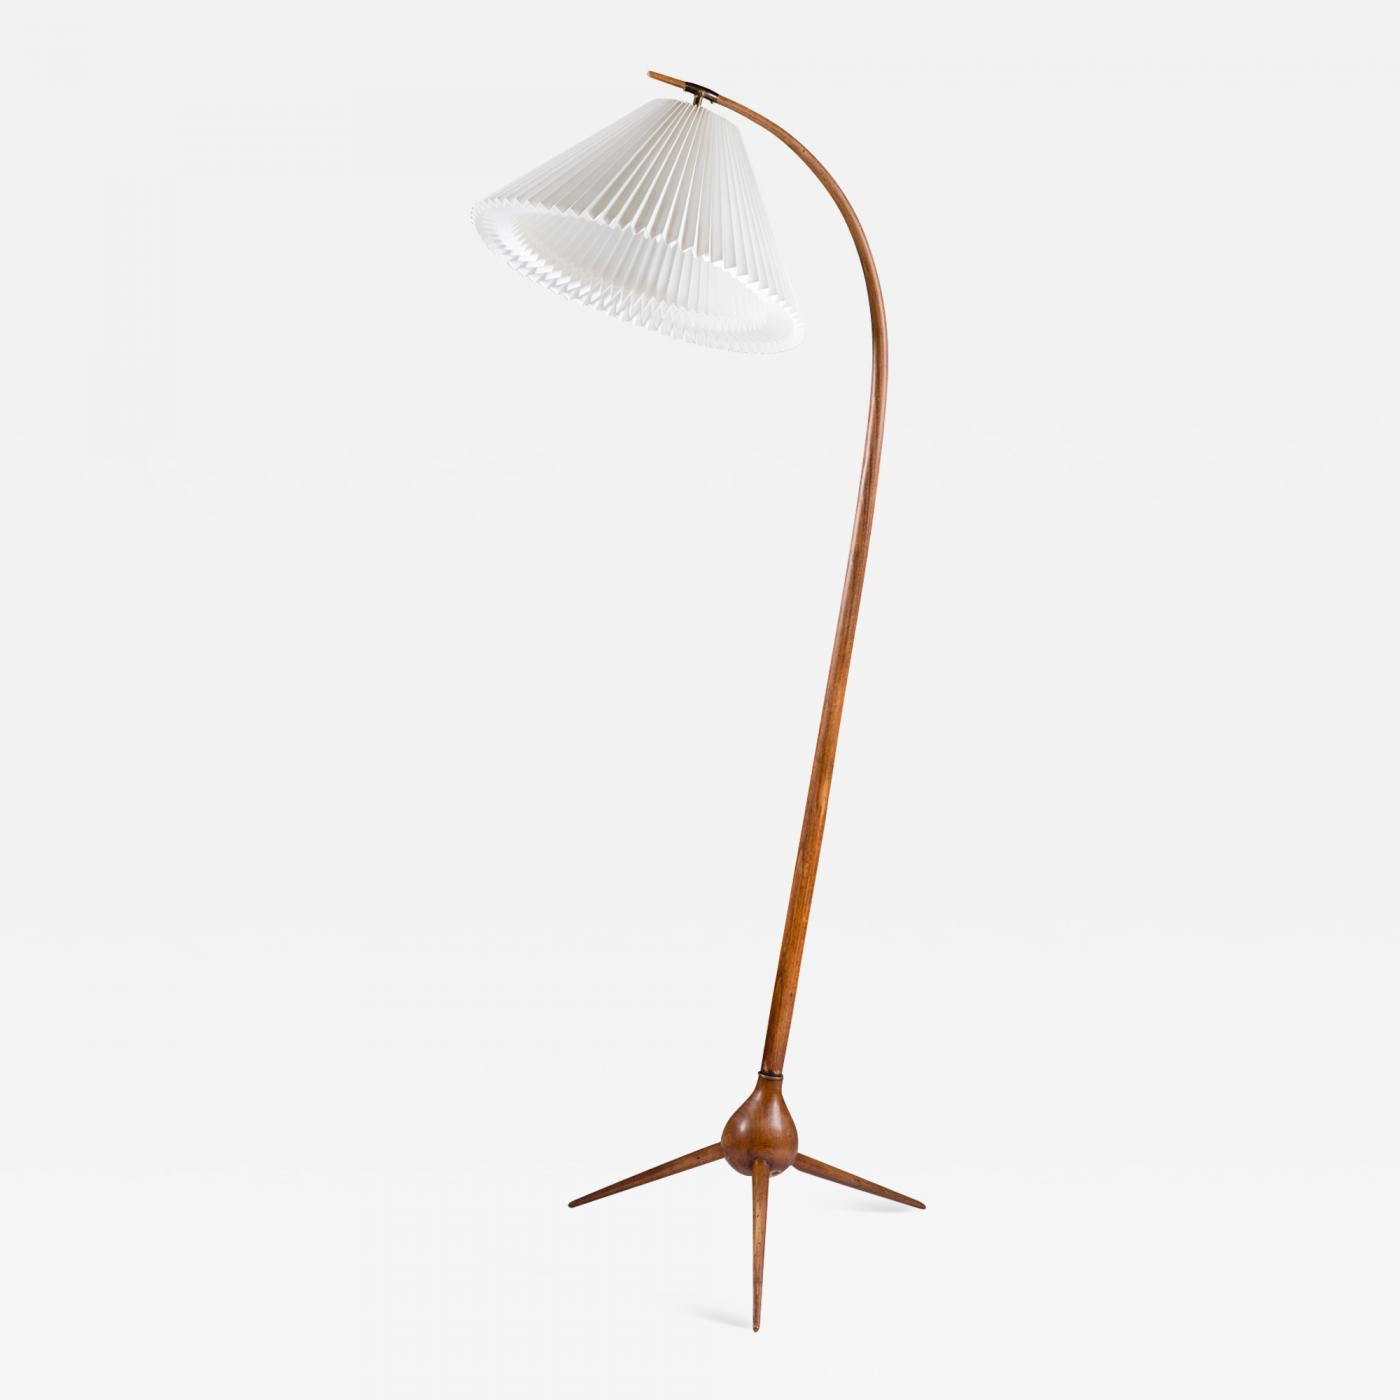 Severin Hansen Danish Mid Century Floor Lamp Bridge Lamp By Severin Hansen Jr